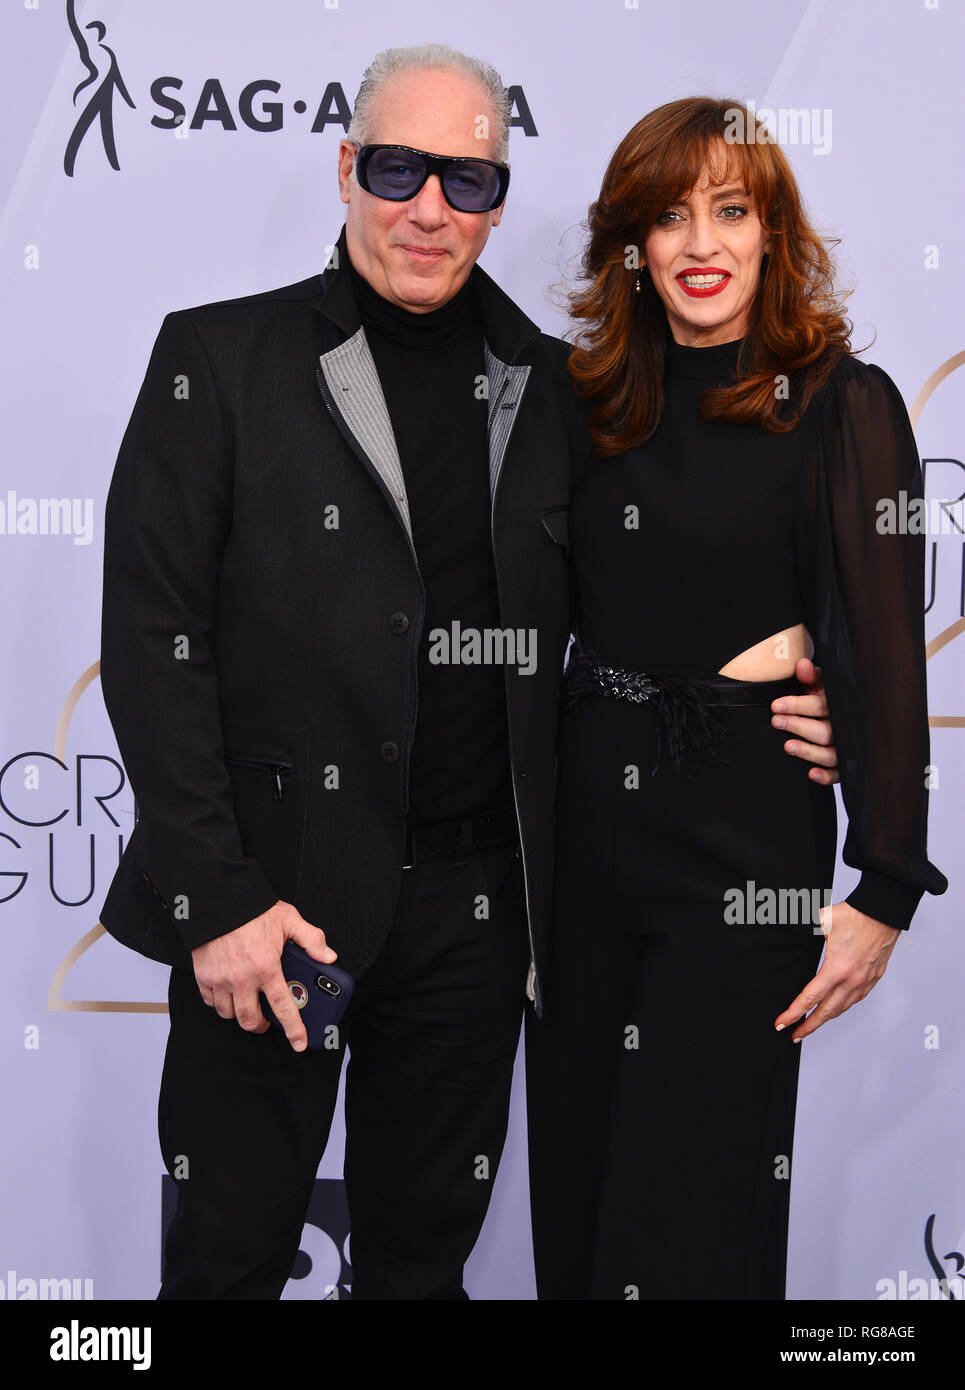 Los Angeles, USA. 27th Jan, 2019. Eleanor Kerrigan, Andrew Dice Clay 302 arriving at the 25th Annual Screen Actors Guild Awards at The Shrine Auditorium on January 27, 2019 in Los Angeles, California Credit: Tsuni/USA/Alamy Live News - Stock Image